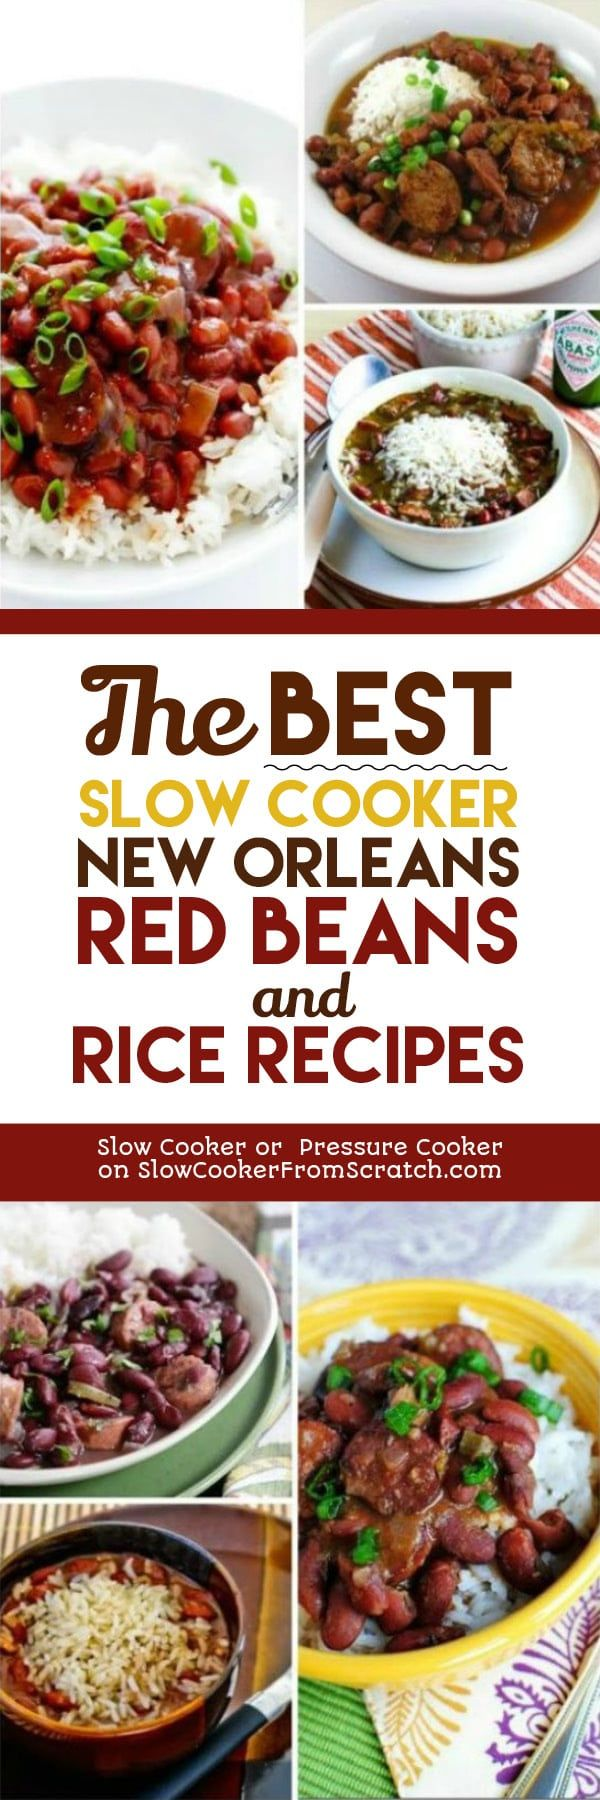 The BEST Slow Cooker New Orleans Red Beans and Rice Recipes featured on Slow Cooker or Pressure Cooker at SlowCookerFromScratch.com